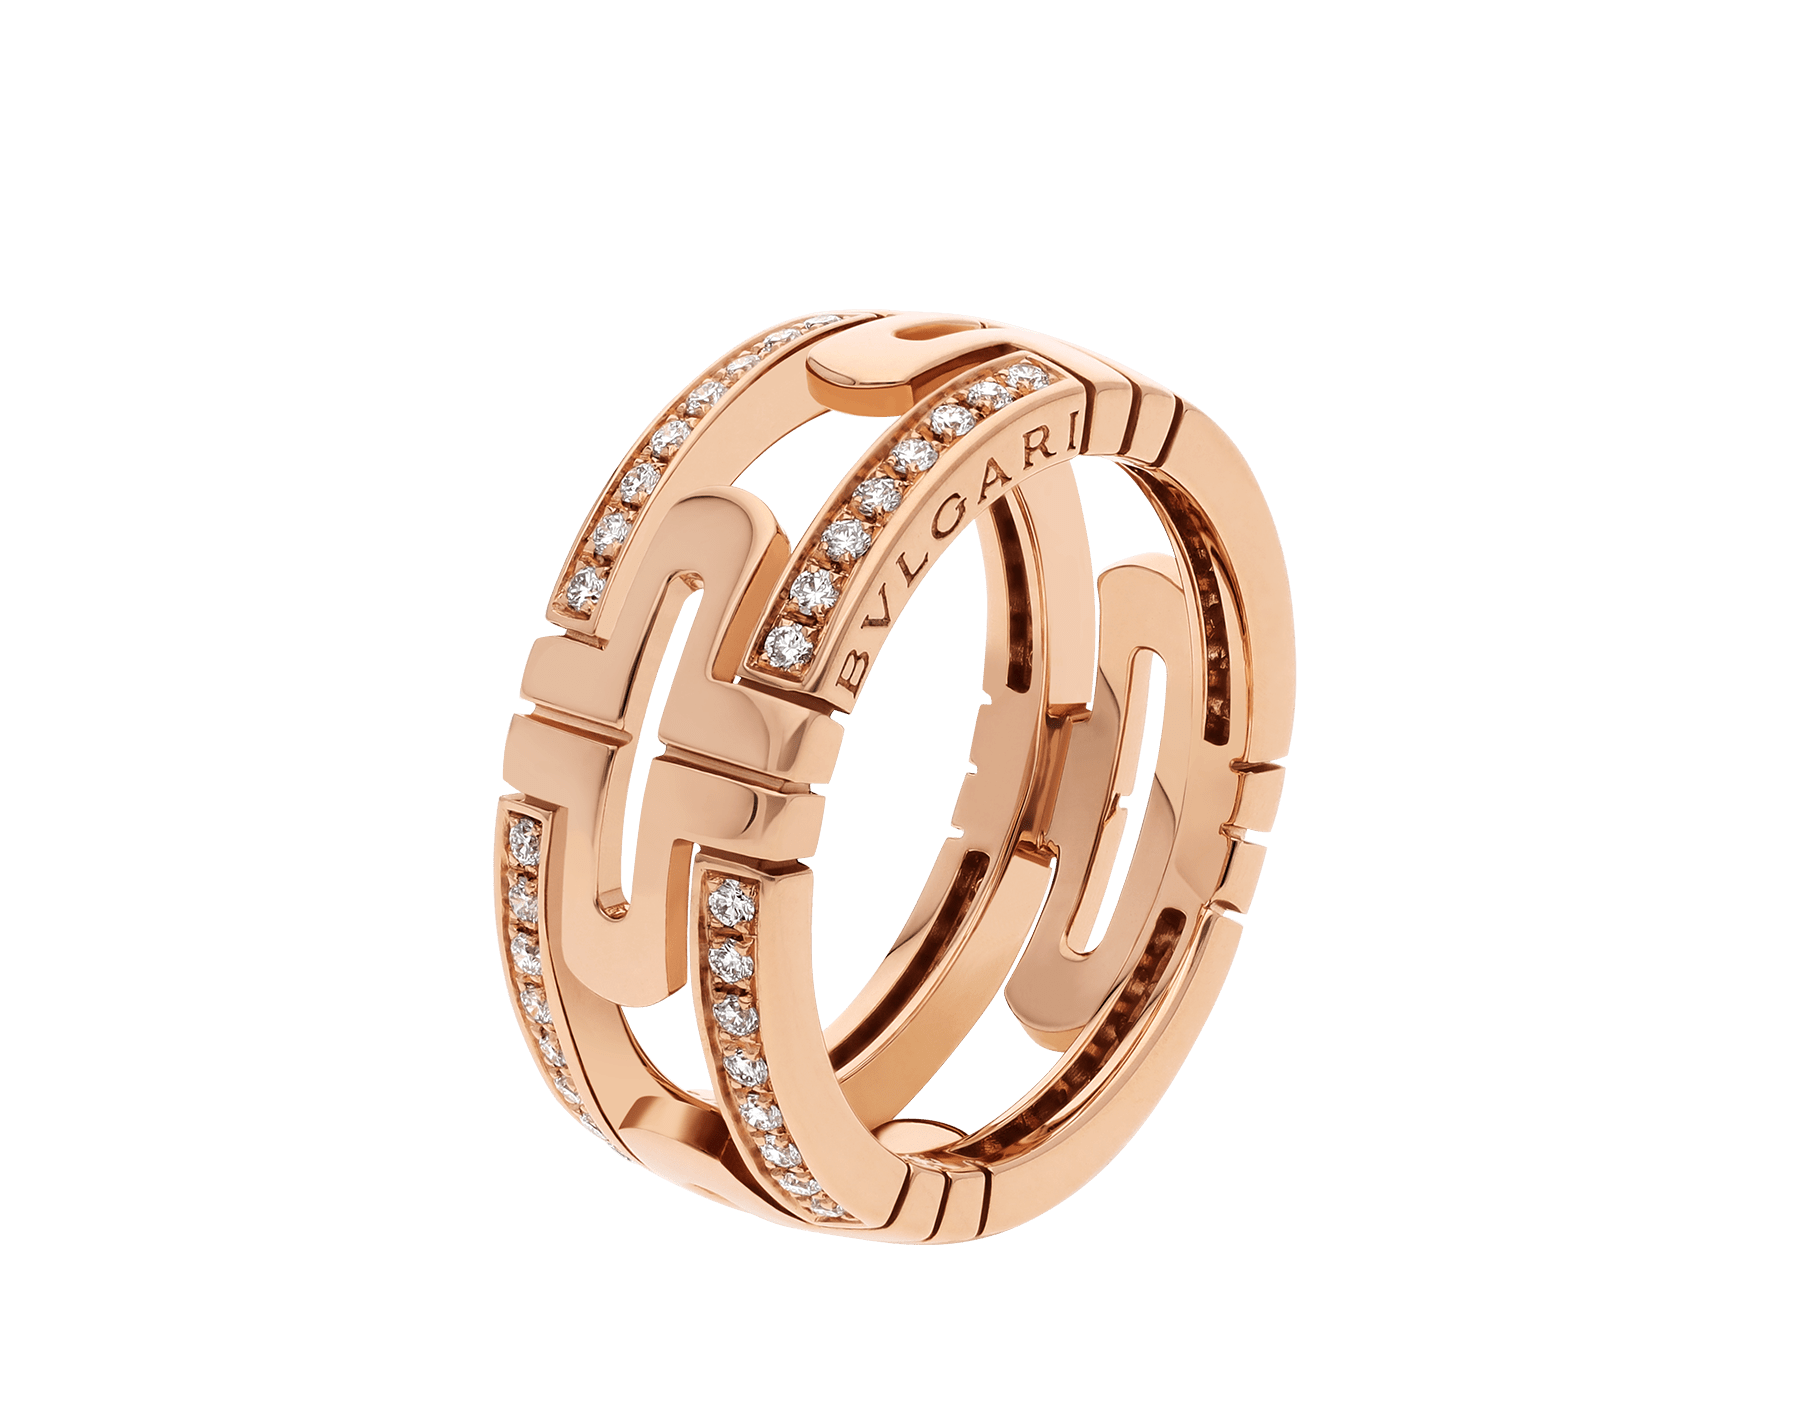 Parentesi 18 kt rose gold band ring set with demi pavé diamonds AN856914 image 1